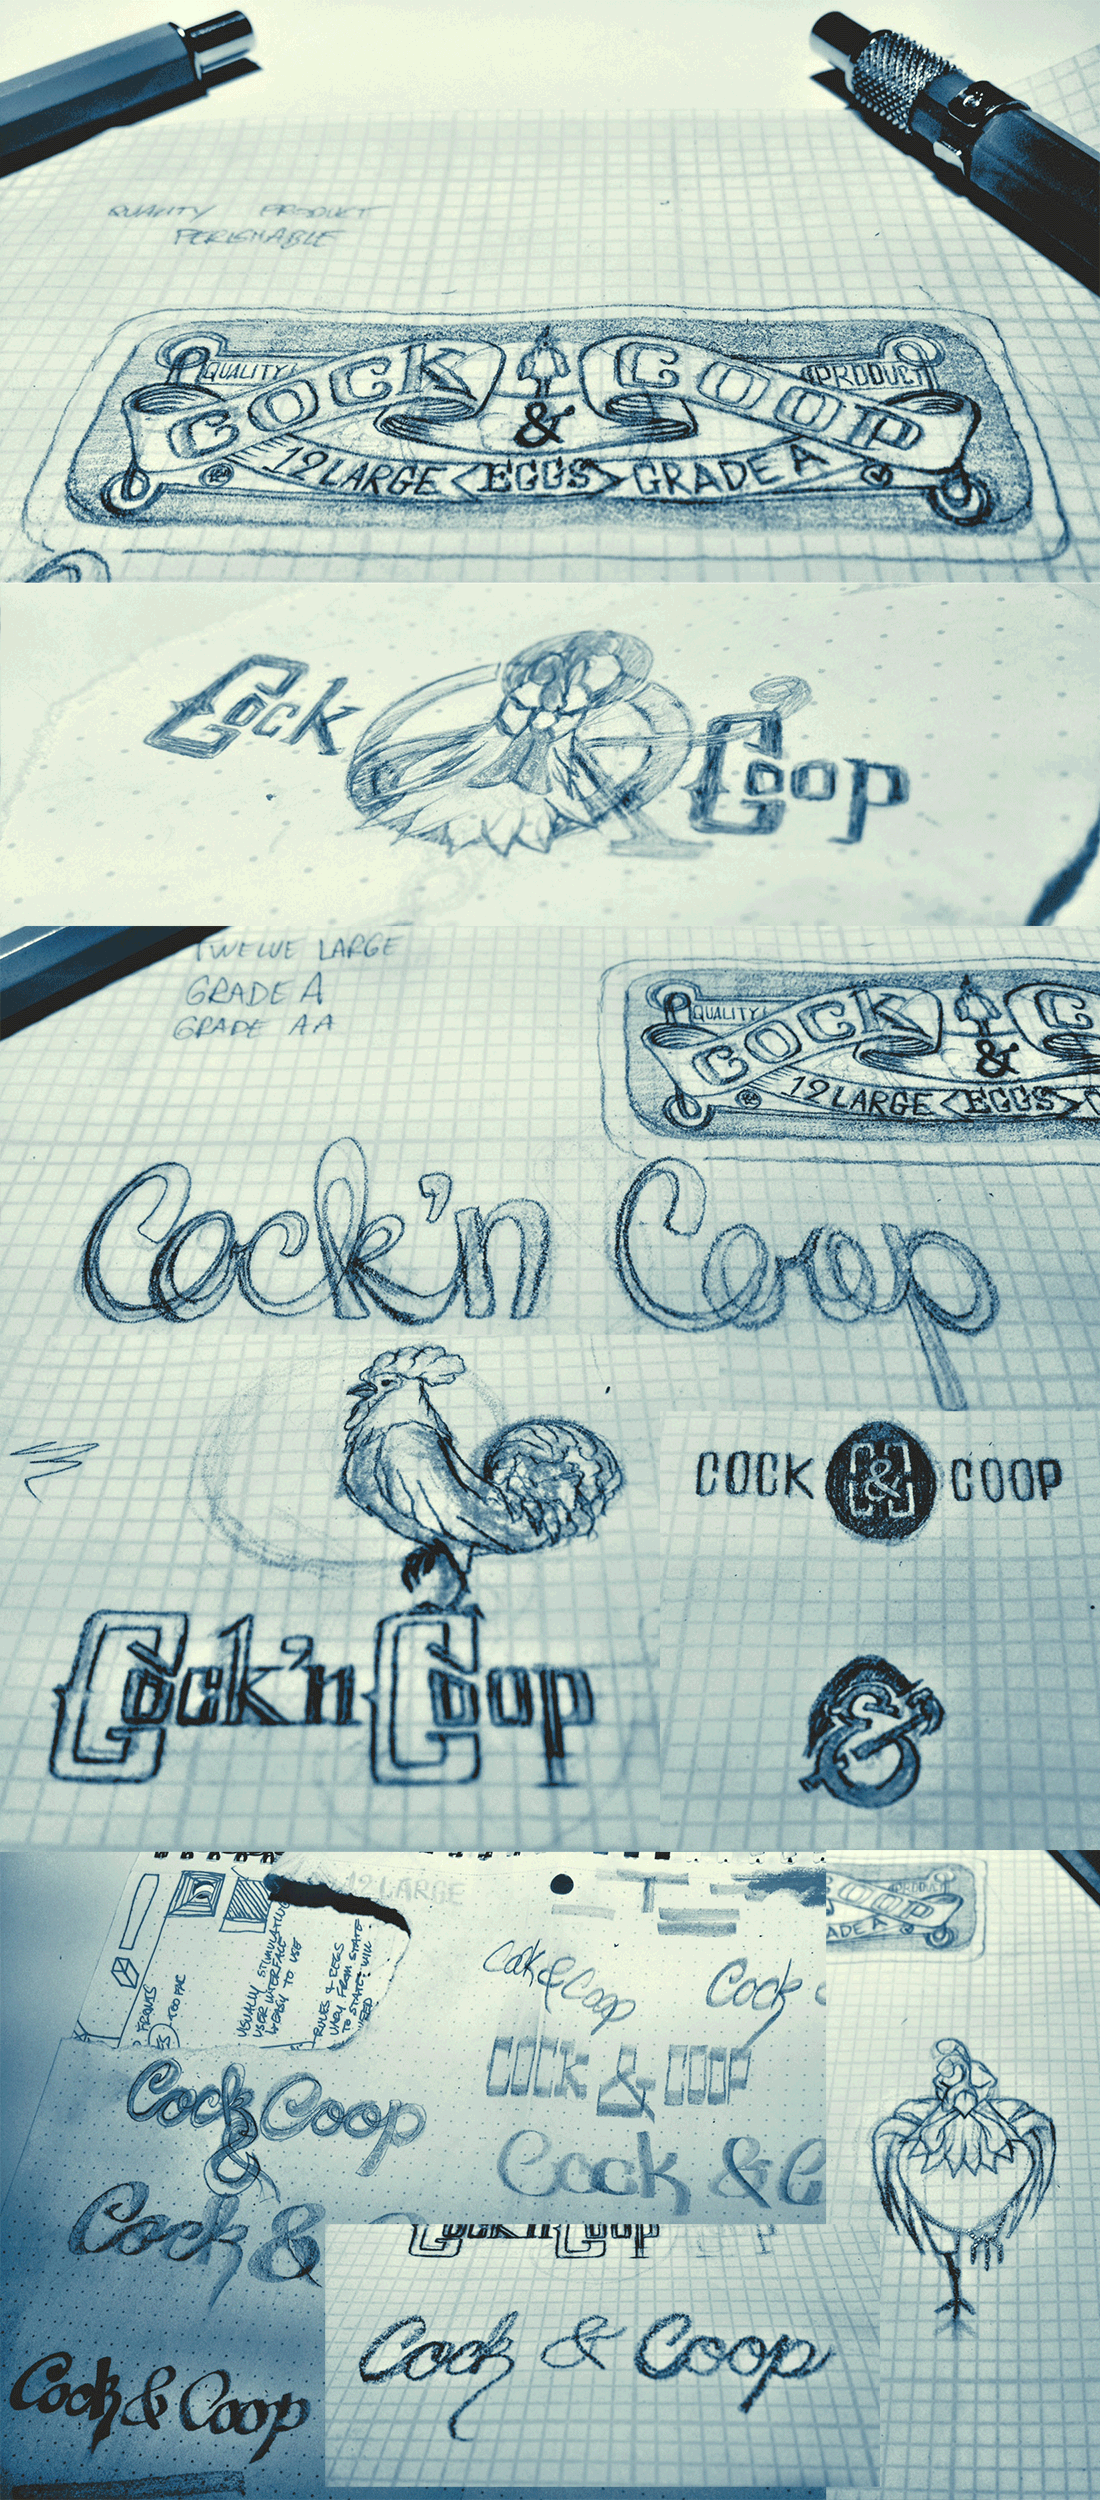 Cock & Coop - image 8 - student project